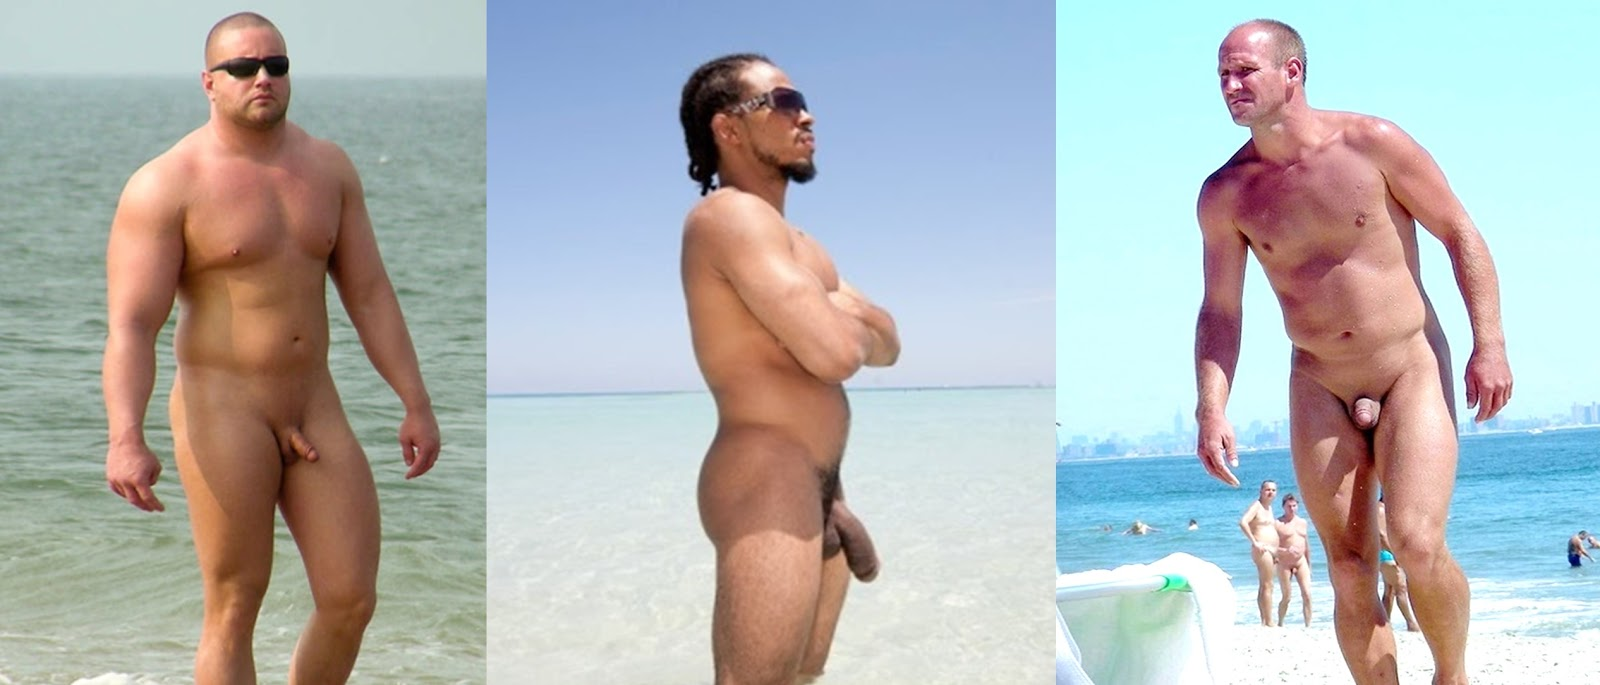 Small dick at nude beach